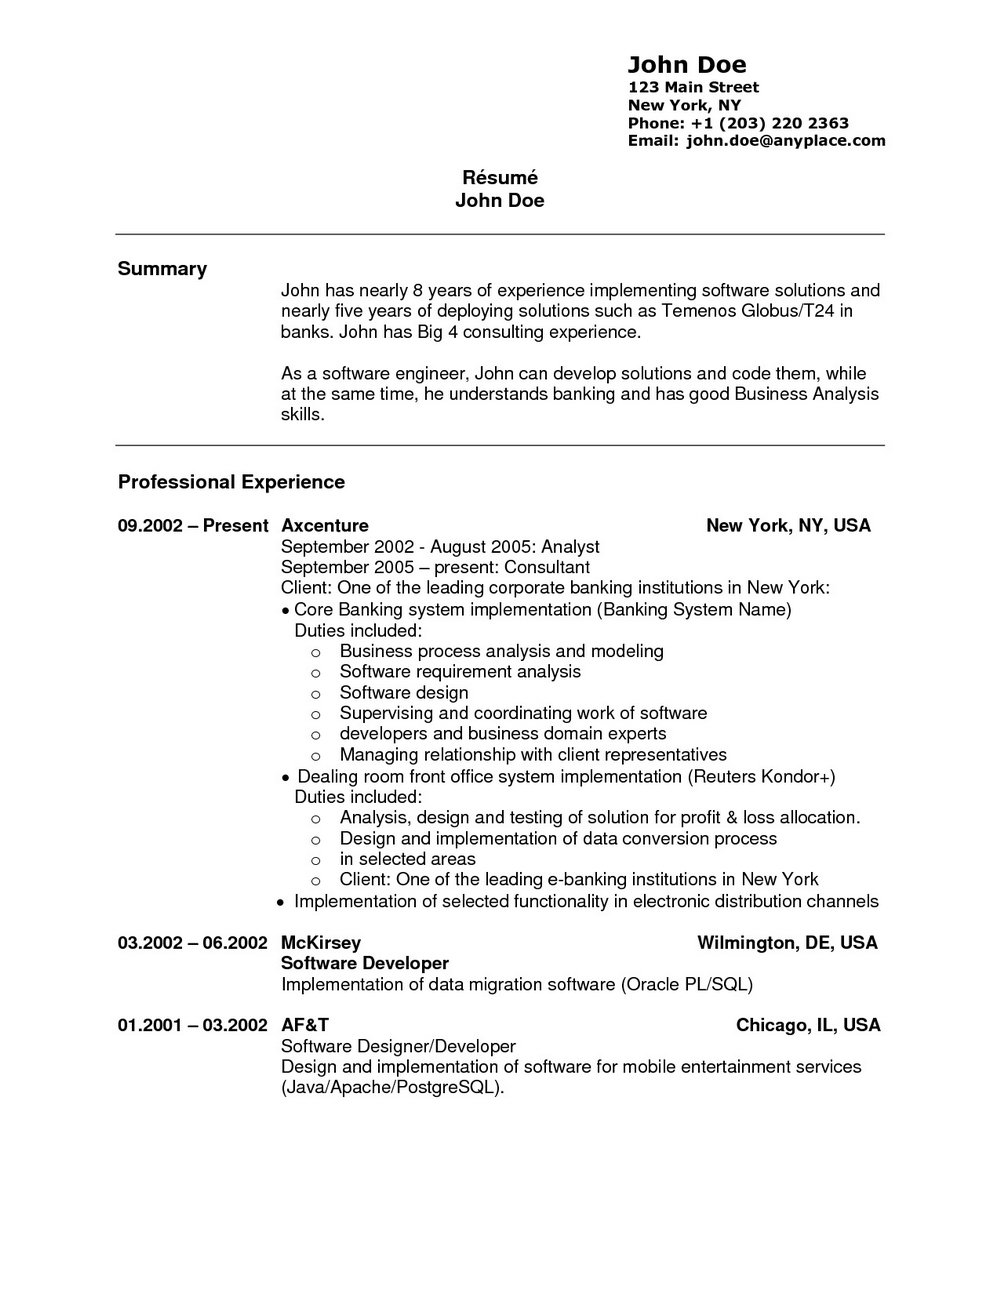 Sample Resume For Teller Position With No Experience